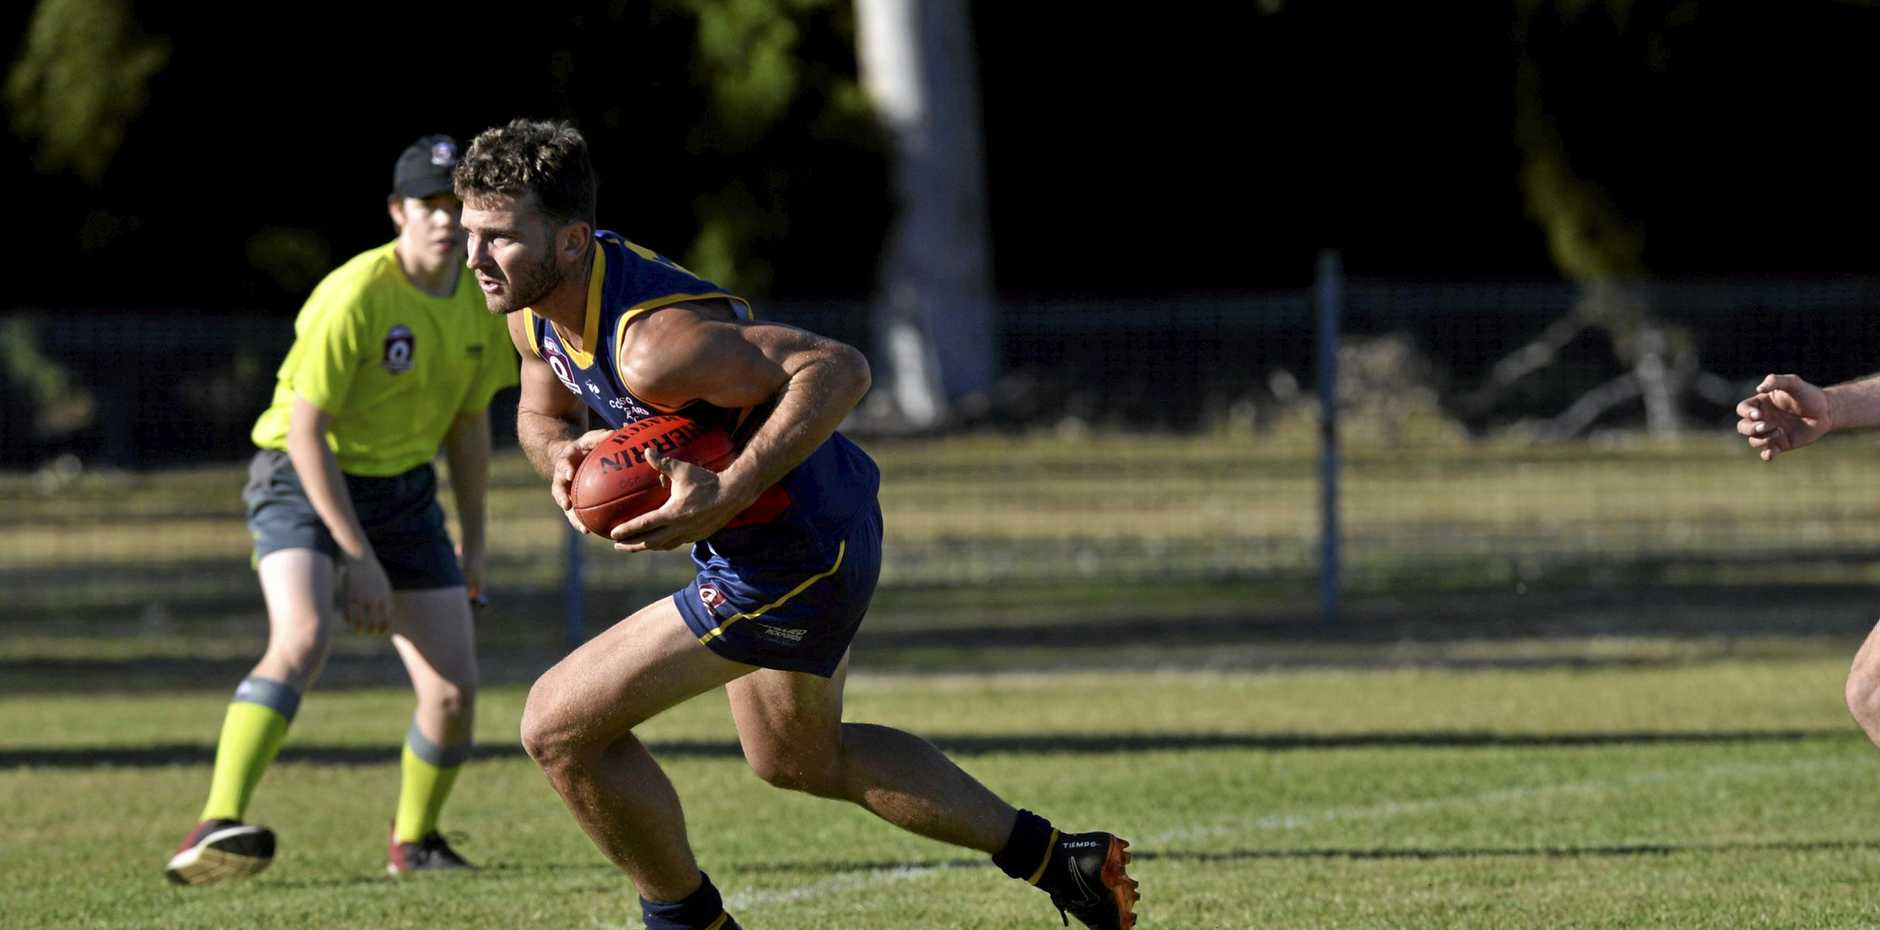 ON THE MOVE: Jacob Hawksworth has been a key piece of the puzzle for University, and they will again look to him against Highfields today.